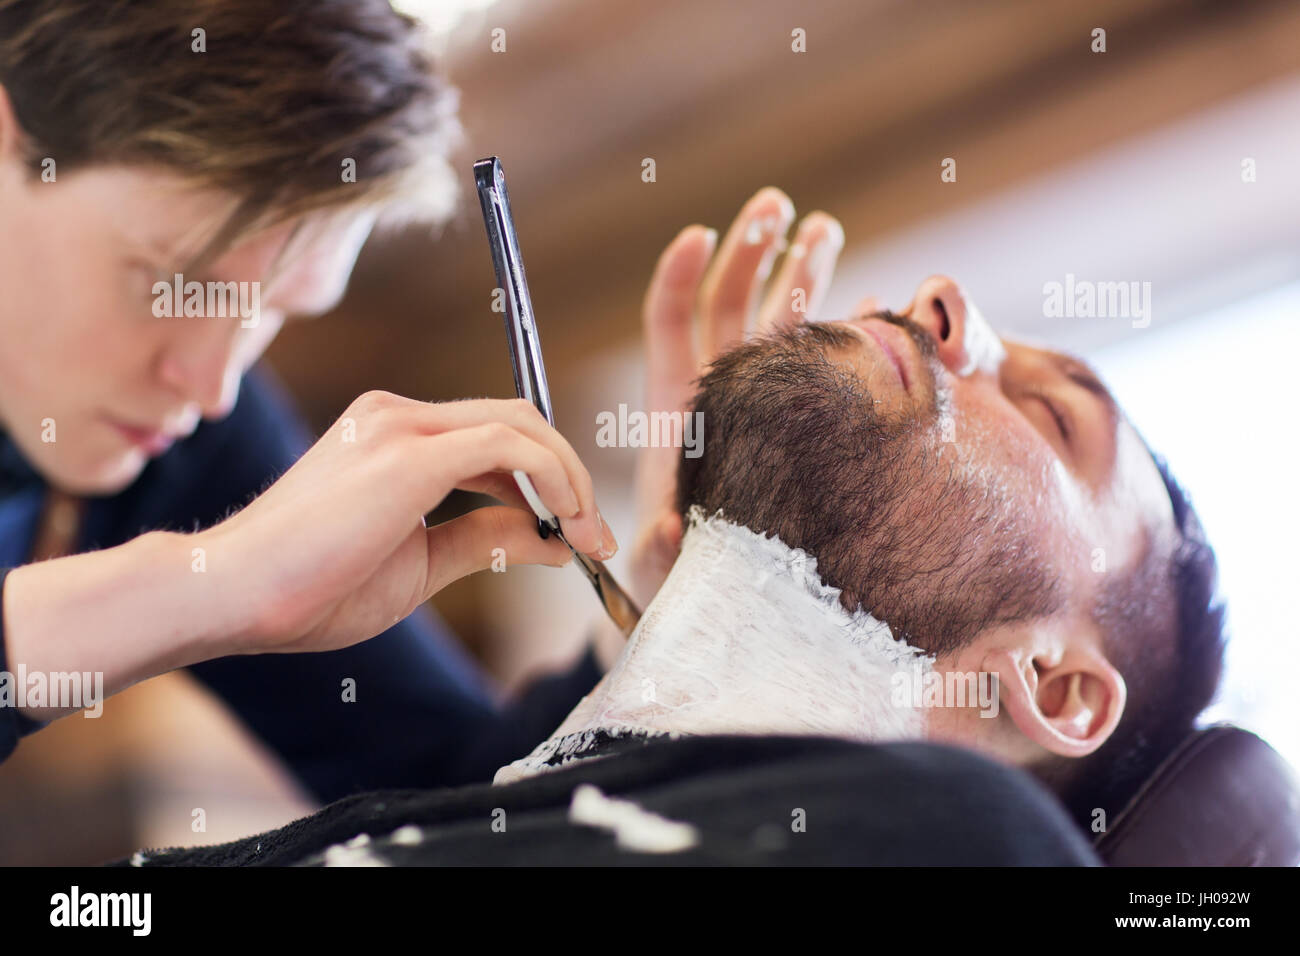 man and barber with straight razor shaving beard - Stock Image